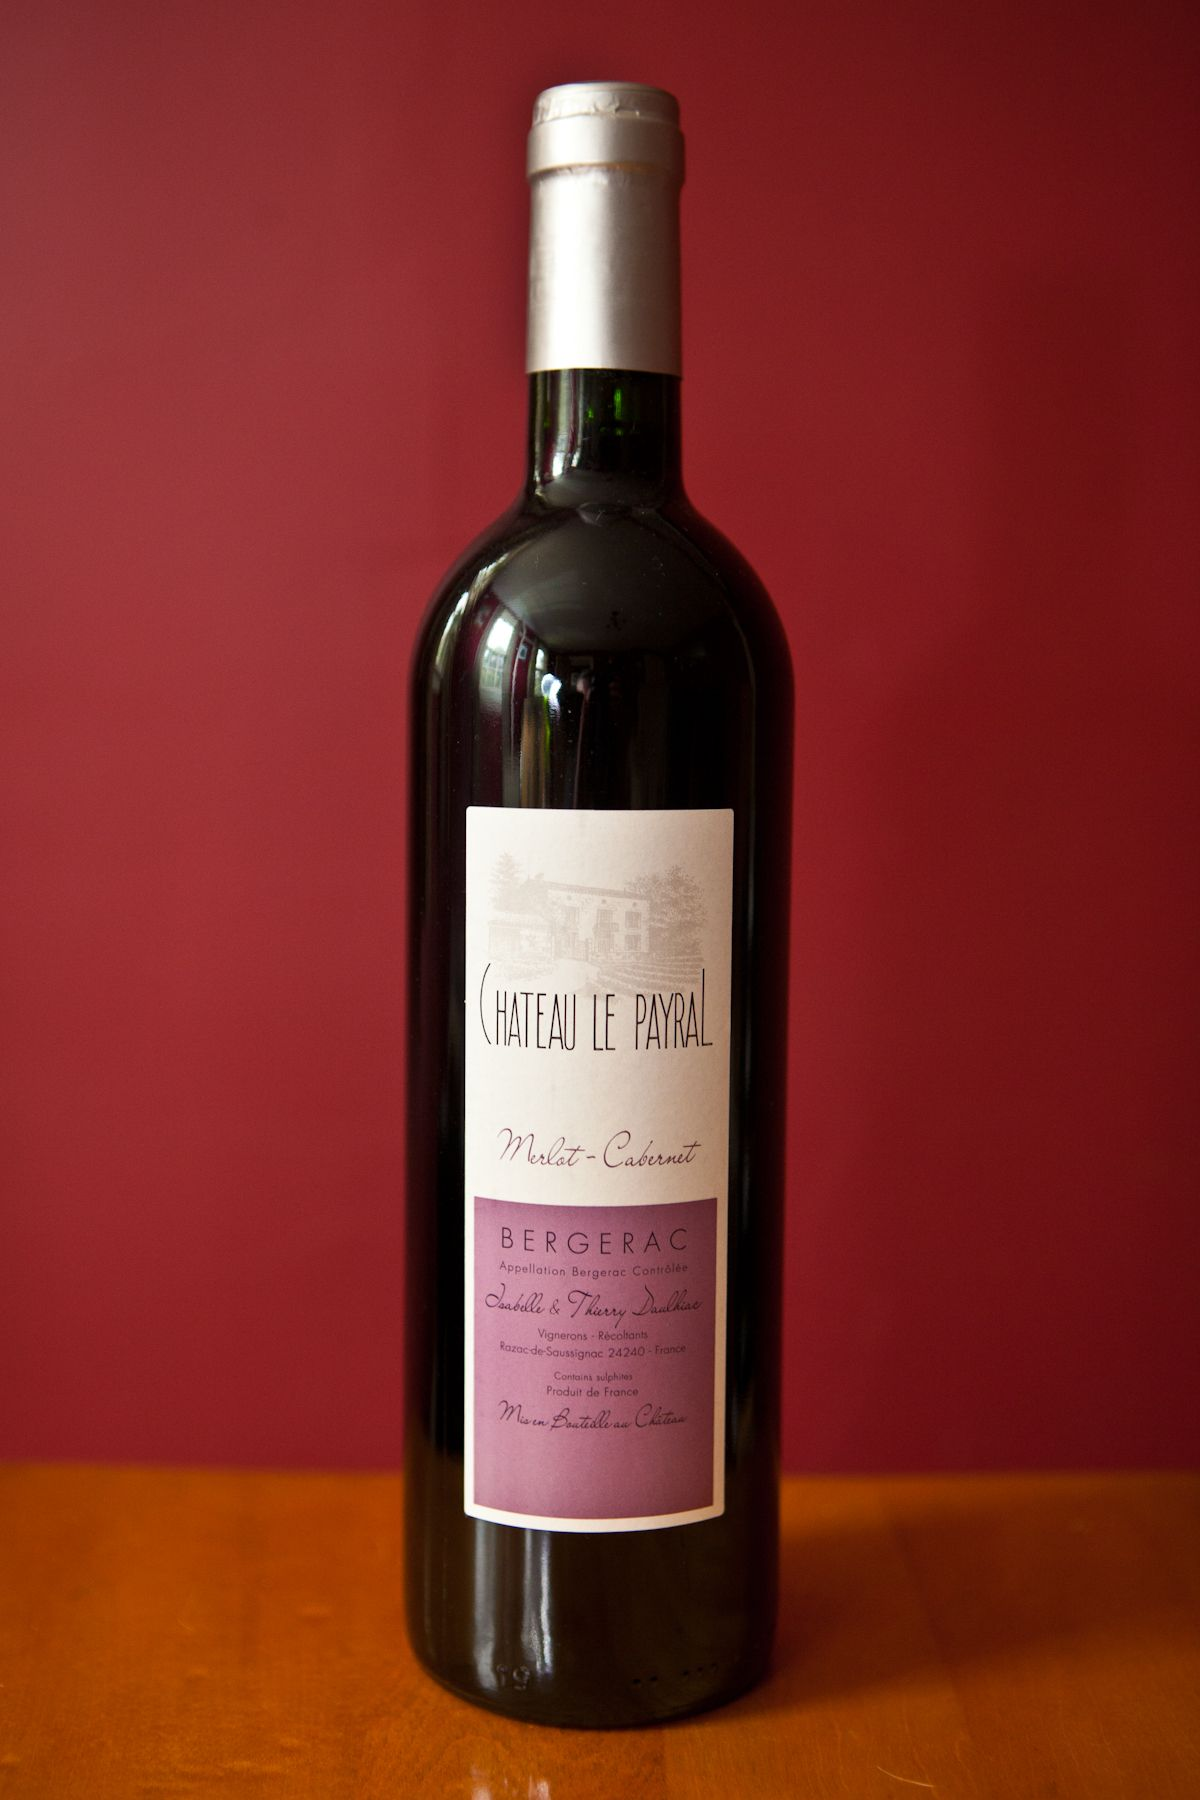 Chateau Le Payral Wine Bottle Organic Wine Wines